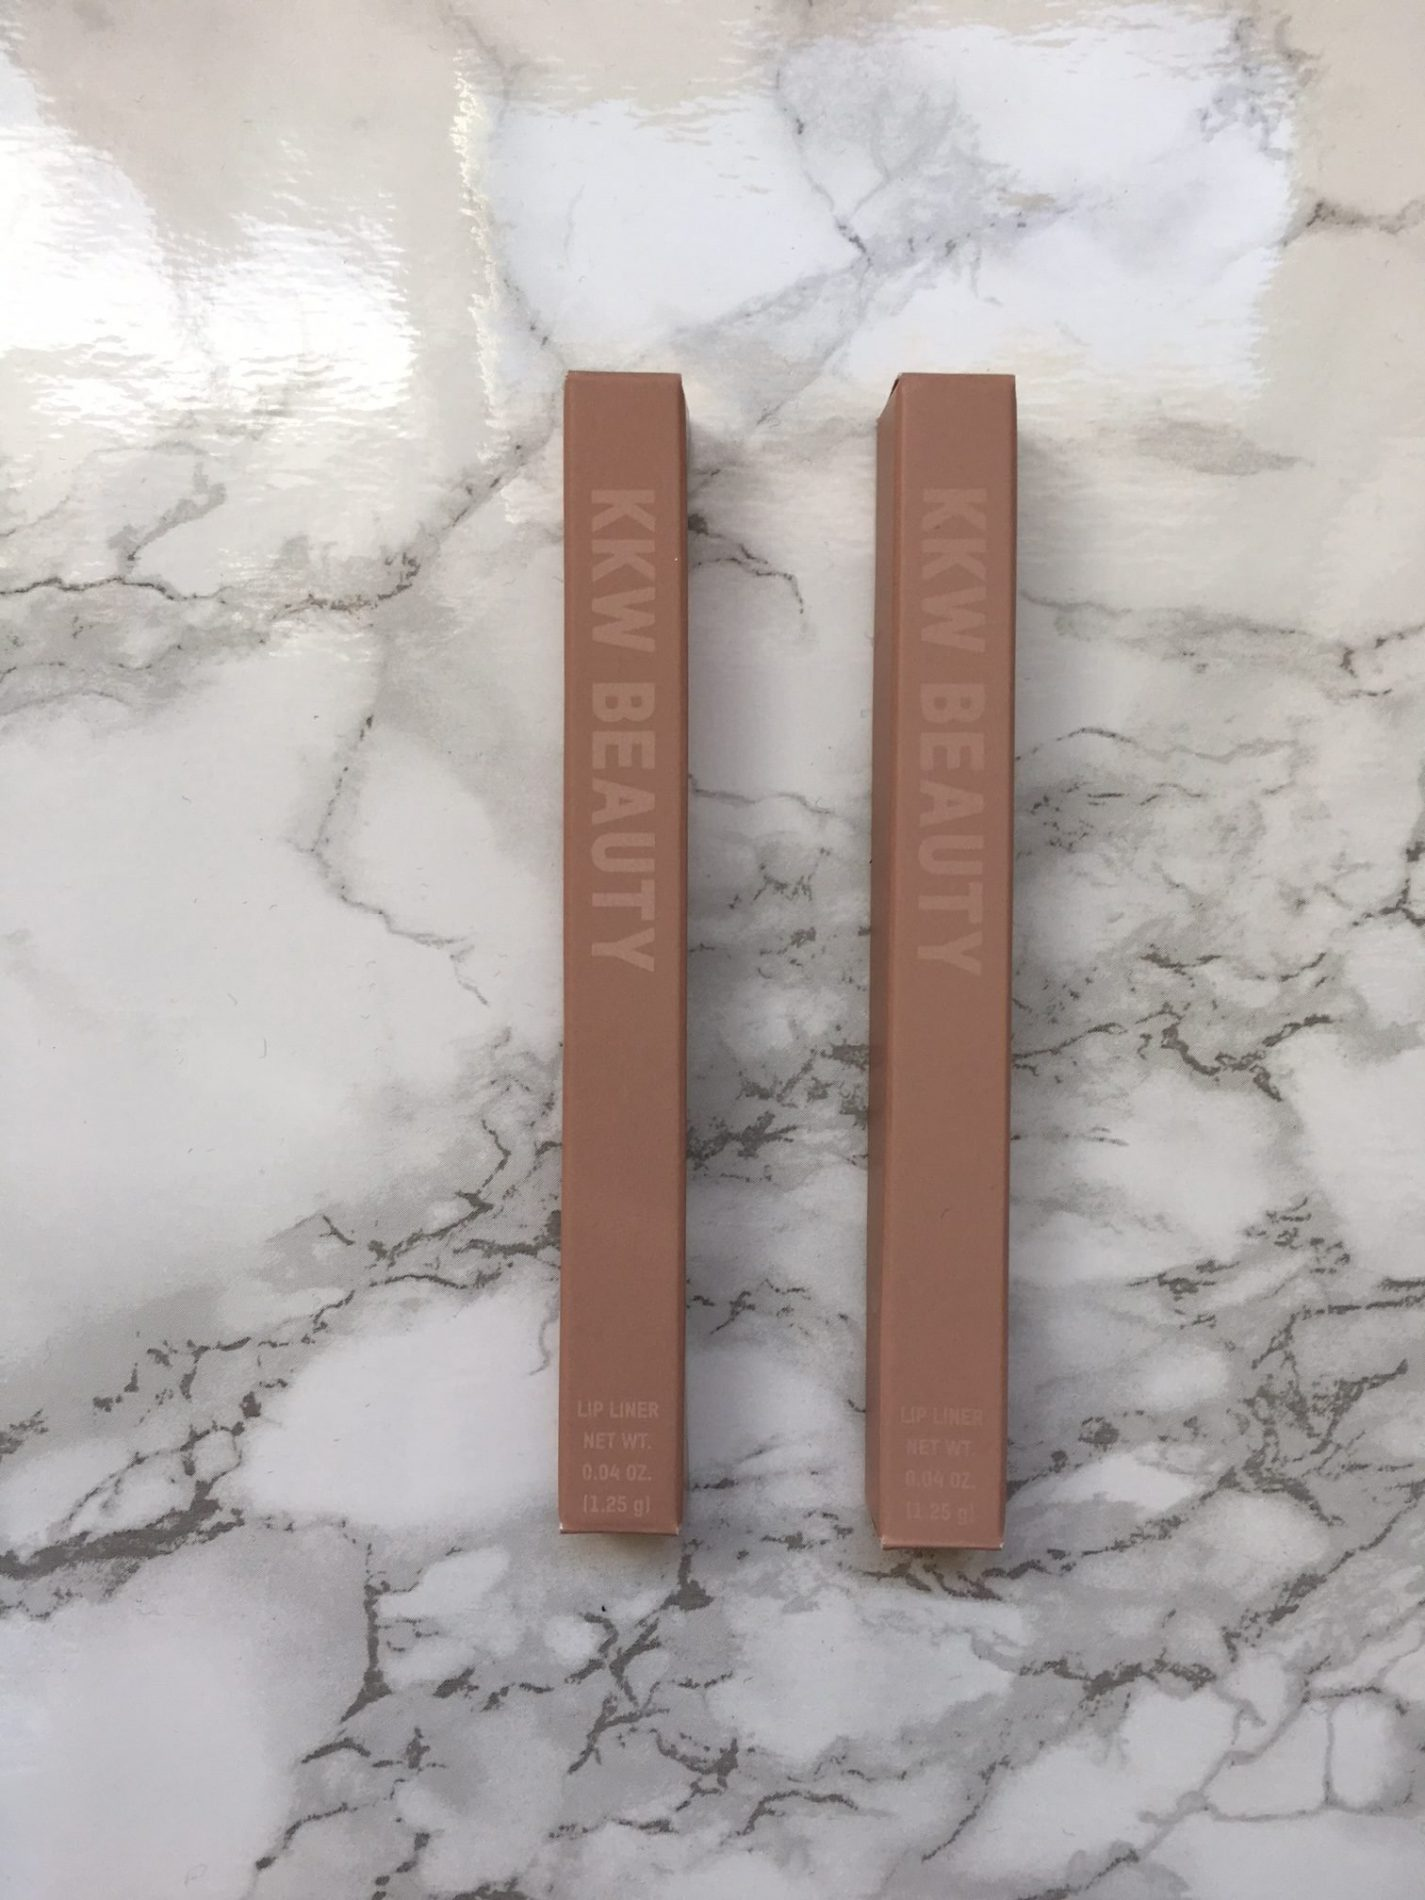 KKW Beauty Classic Collection Palette, Lipsticks & Lipliners | Review ⋆ Beautymone